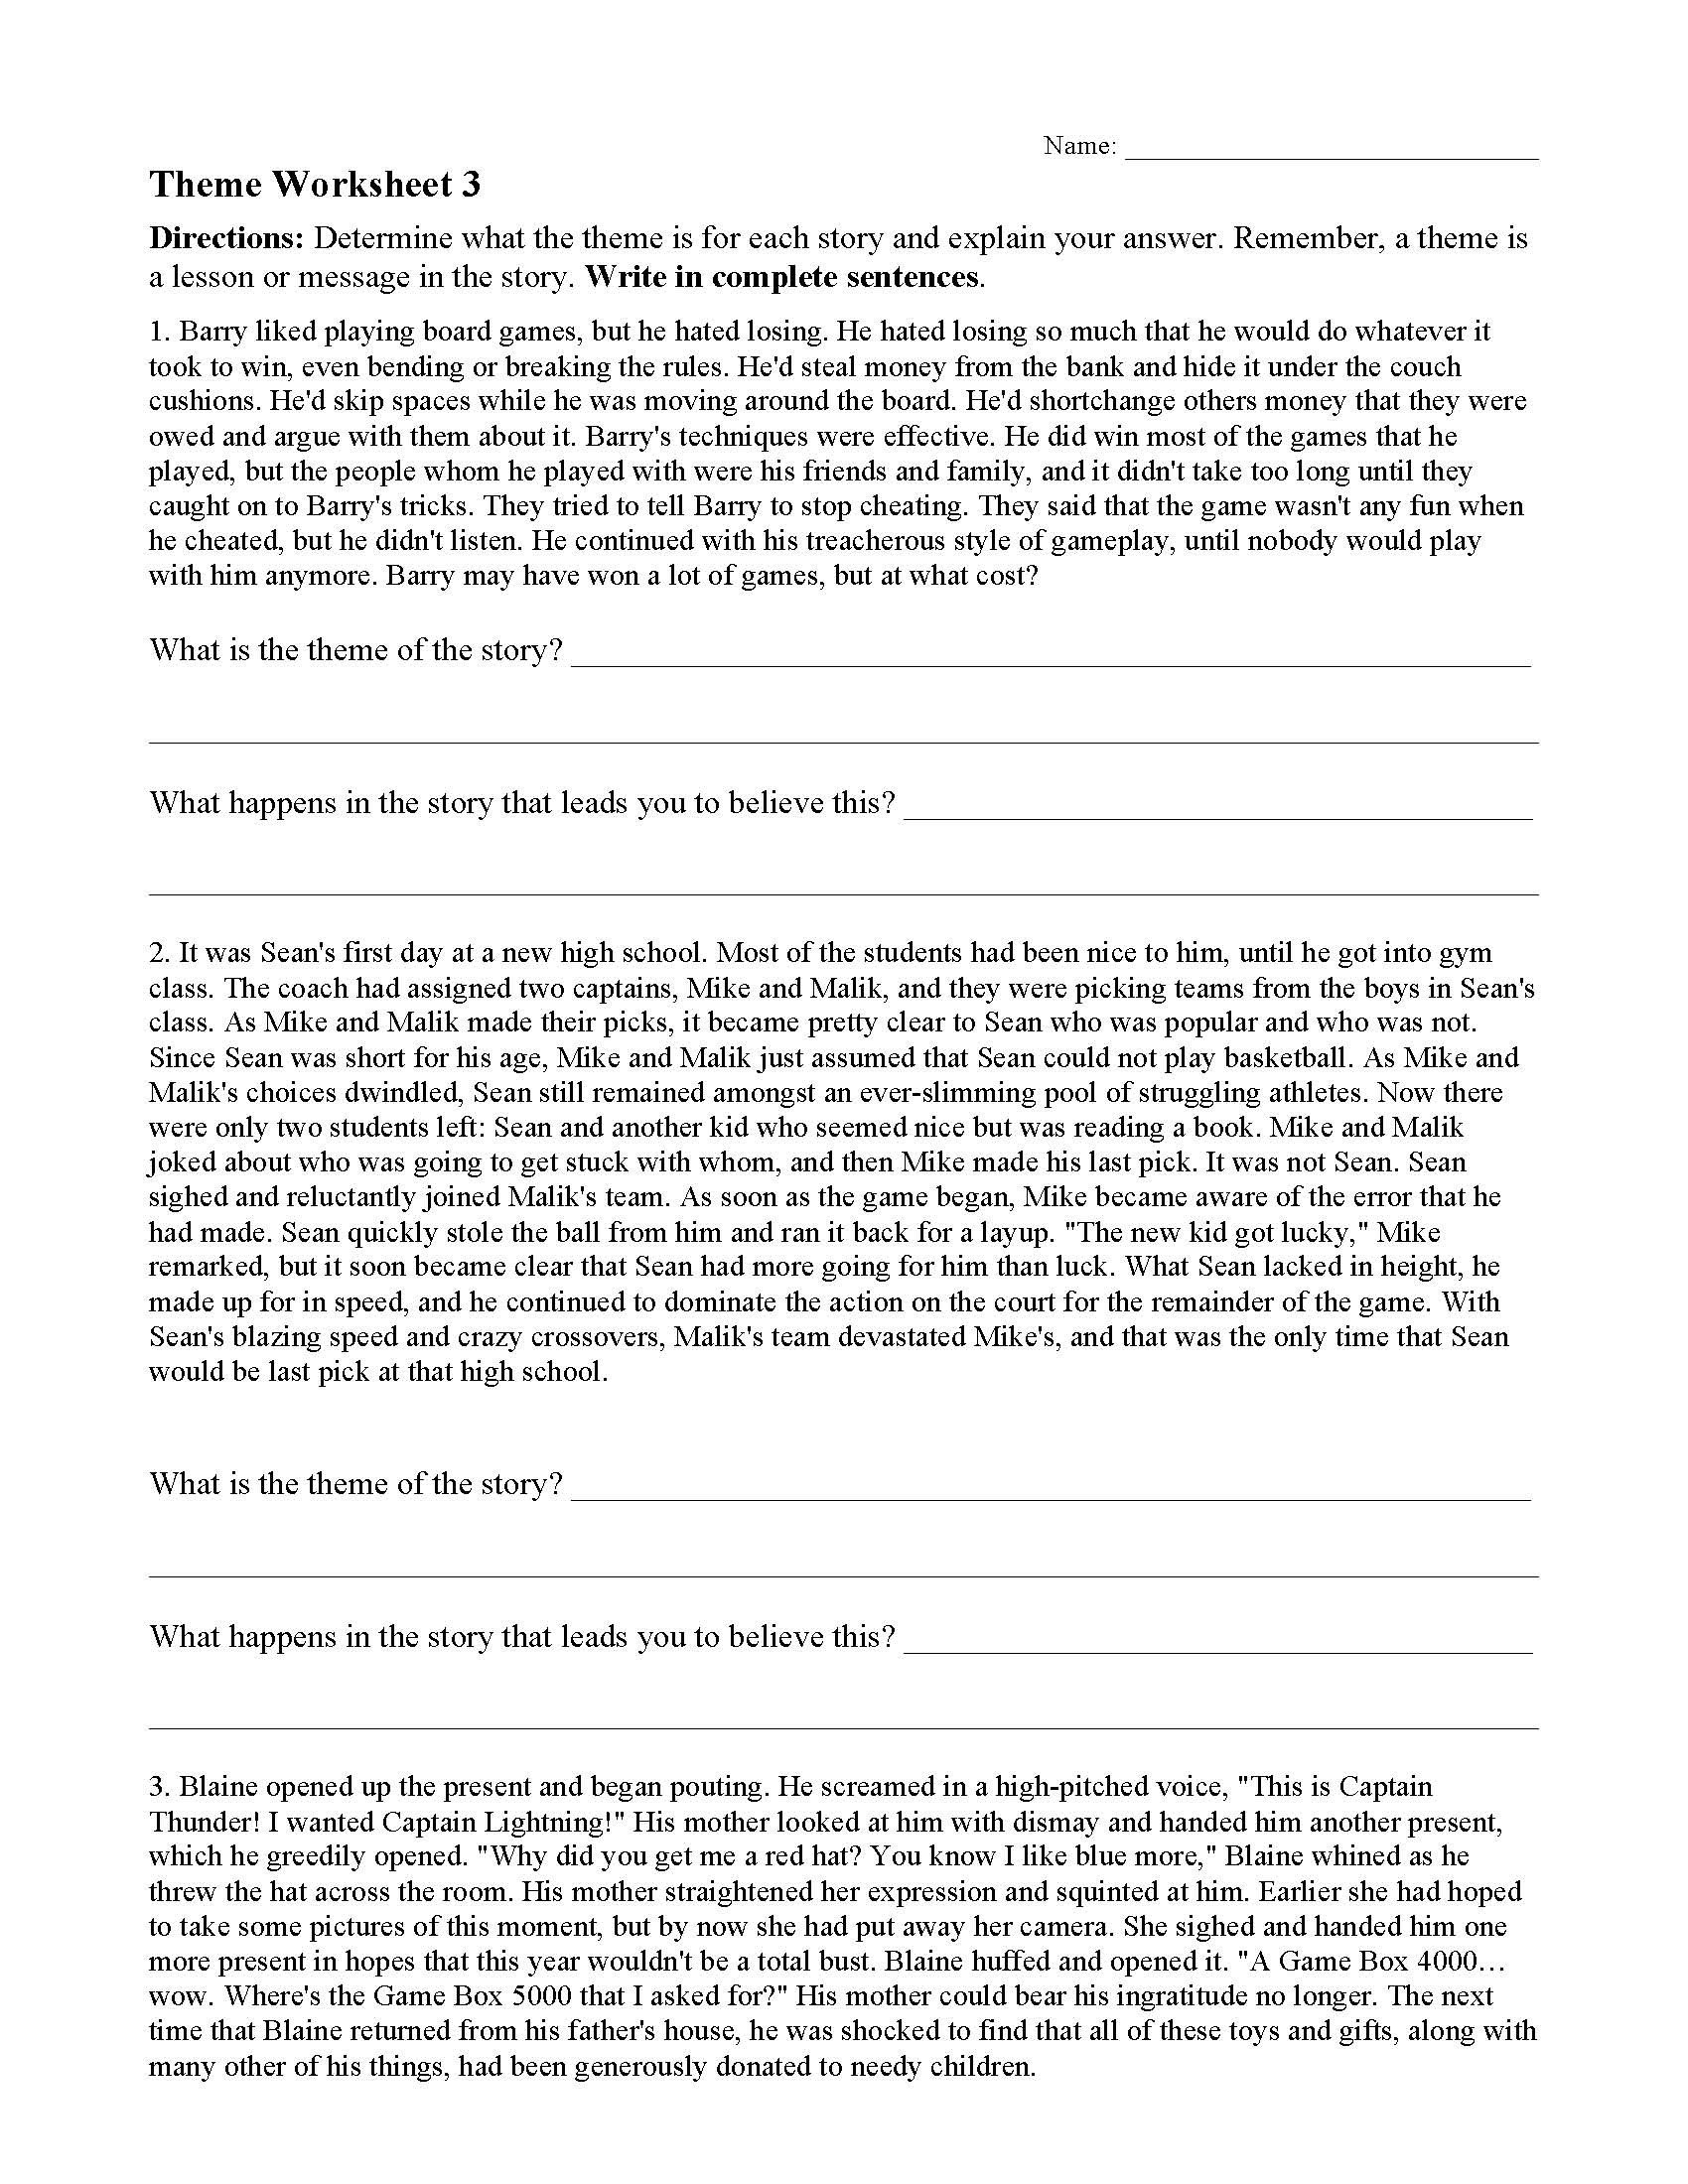 theme worksheet 03 01